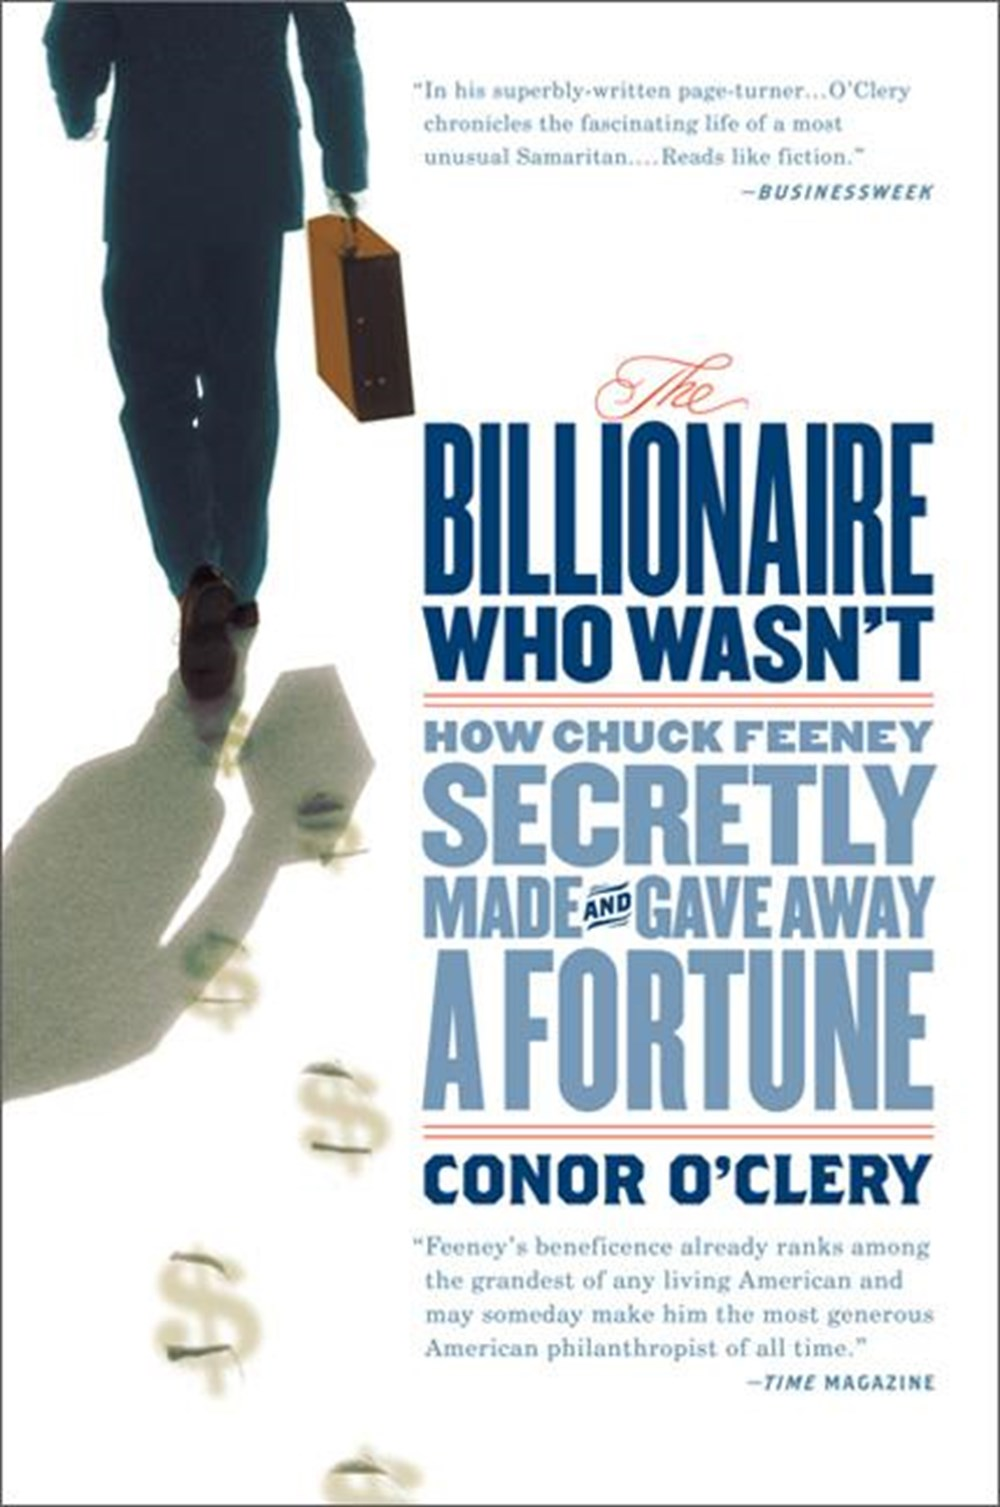 Billionaire Who Wasn't How Chuck Feeney Secretly Made and Gave Away a Fortune